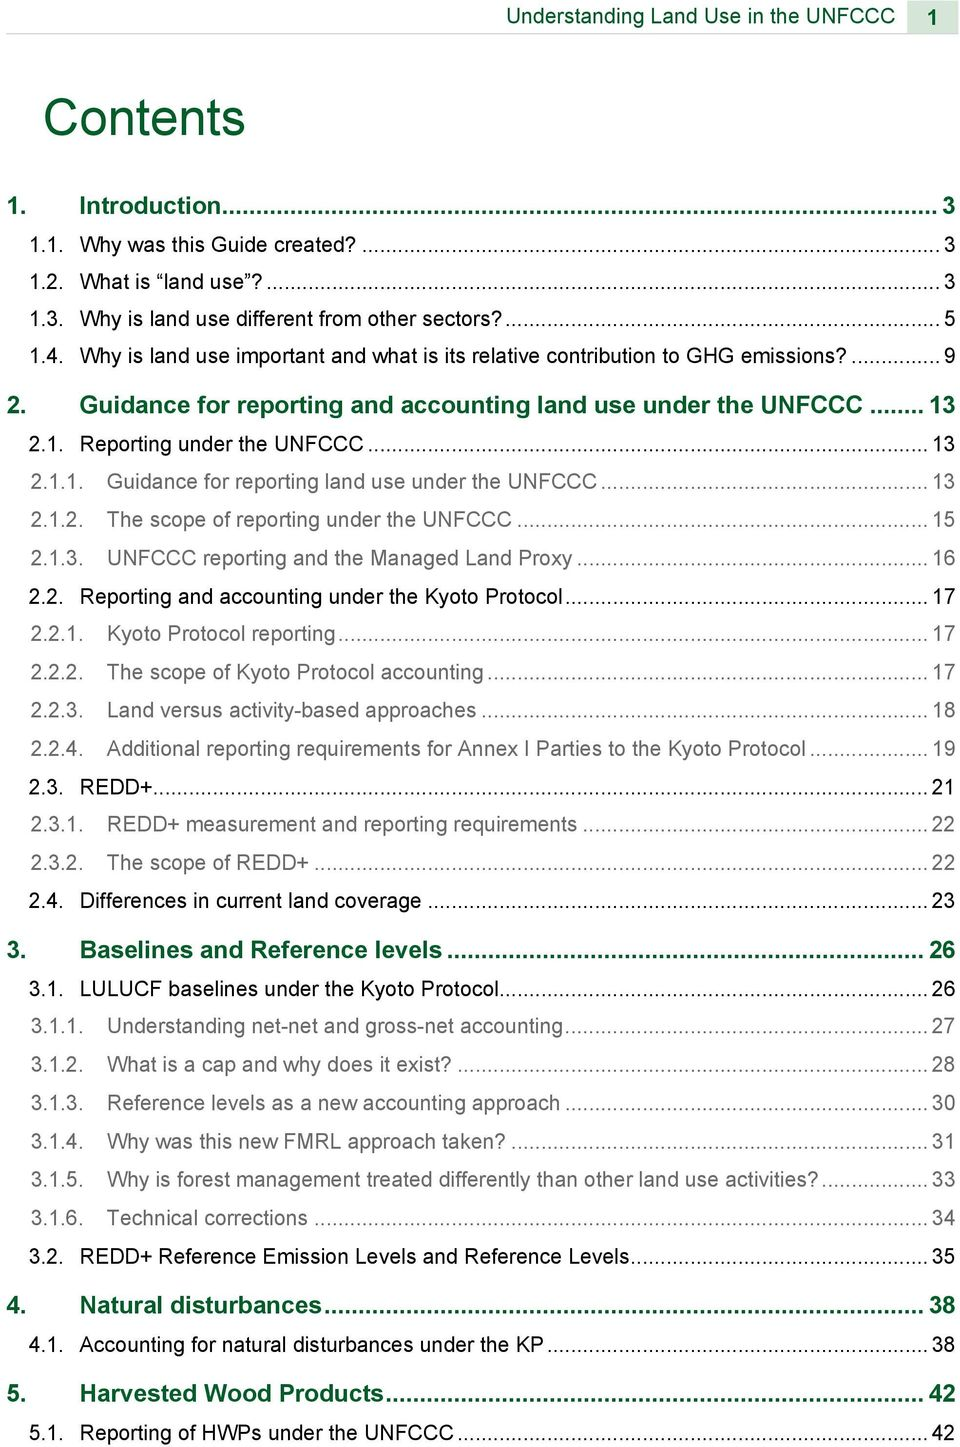 2.1. Reporting under the UNFCCC... 13 2.1.1. Guidance for reporting land use under the UNFCCC... 13 2.1.2. The scope of reporting under the UNFCCC... 15 2.1.3. UNFCCC reporting and the Managed Land Proxy.